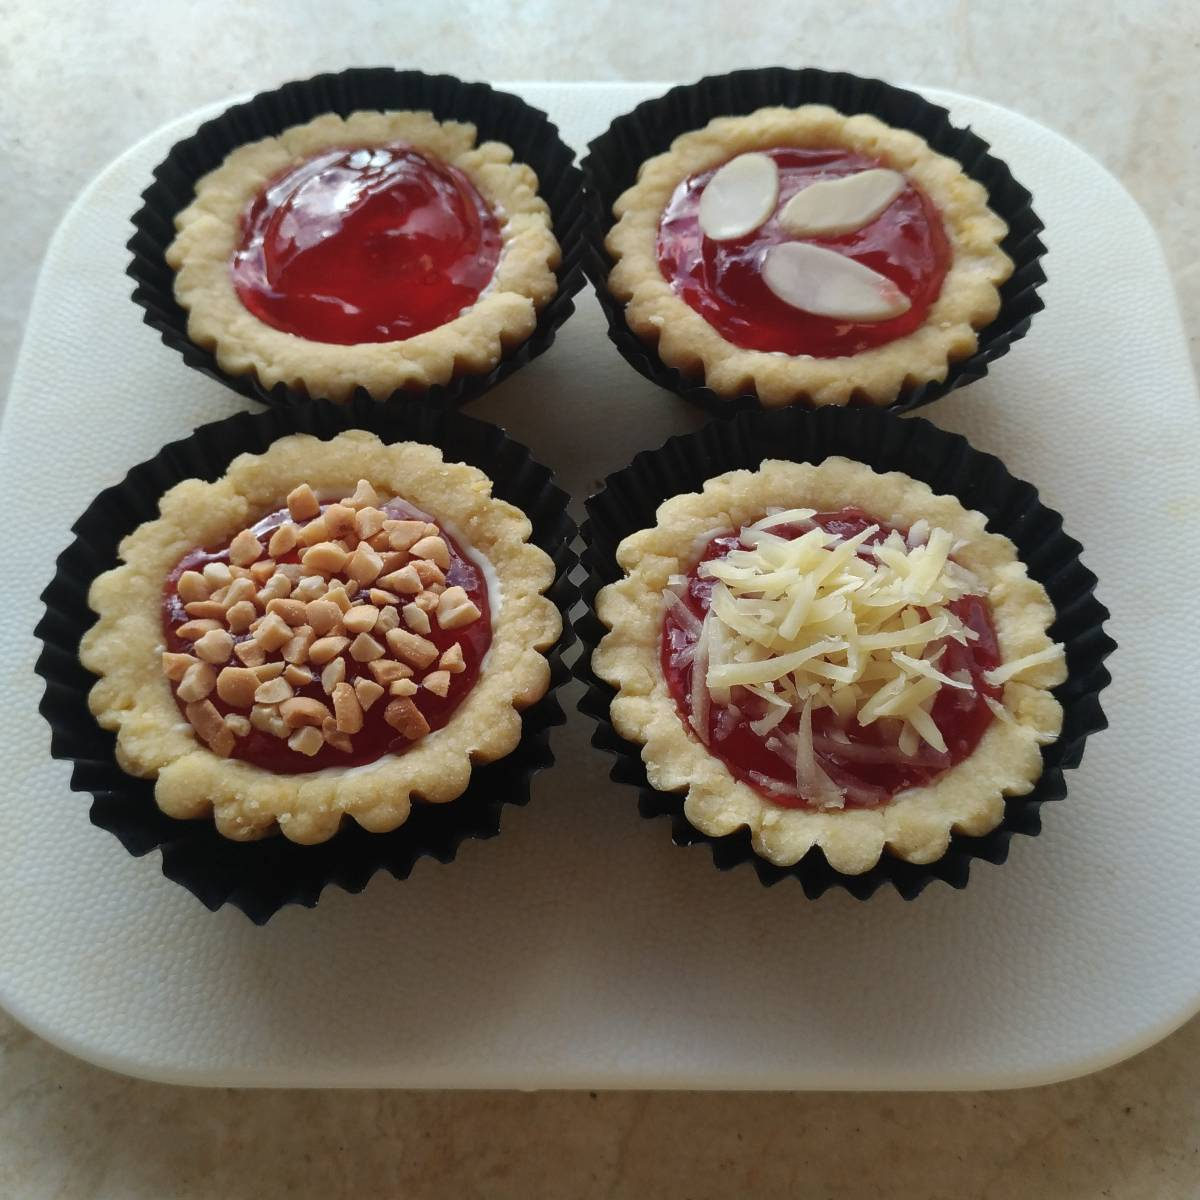 Mini Pie Strawberry Original Crust With Topping(4 Pieces)